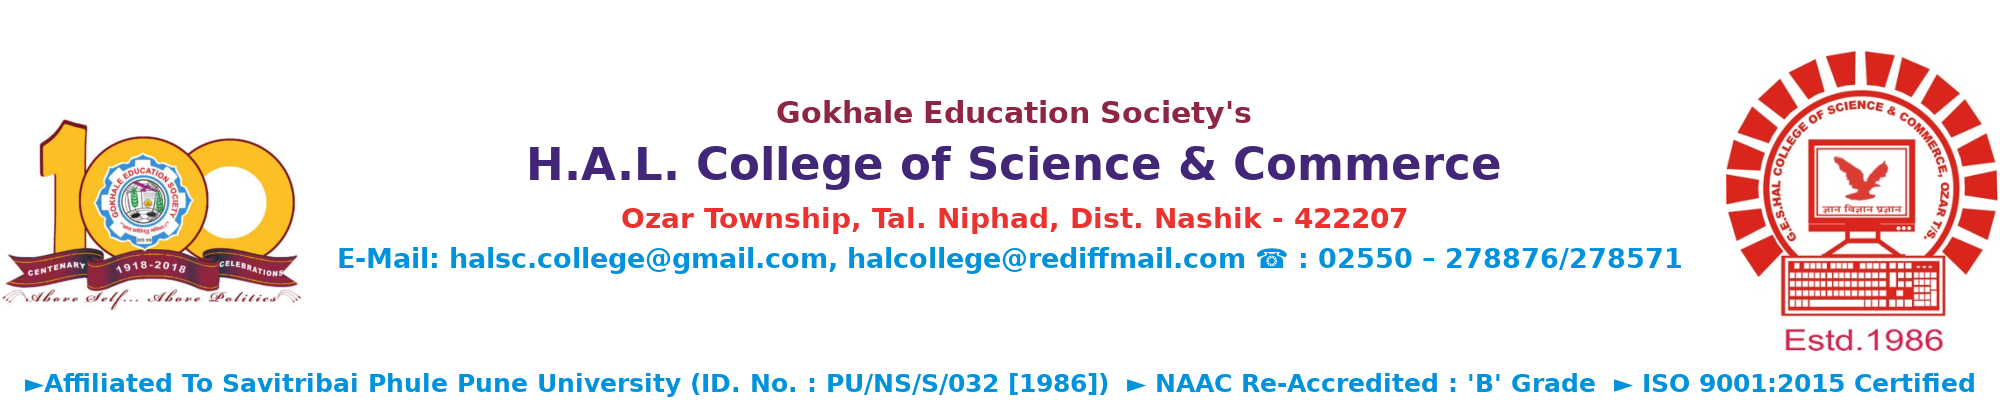 H.A.L. College of Science and Commerce